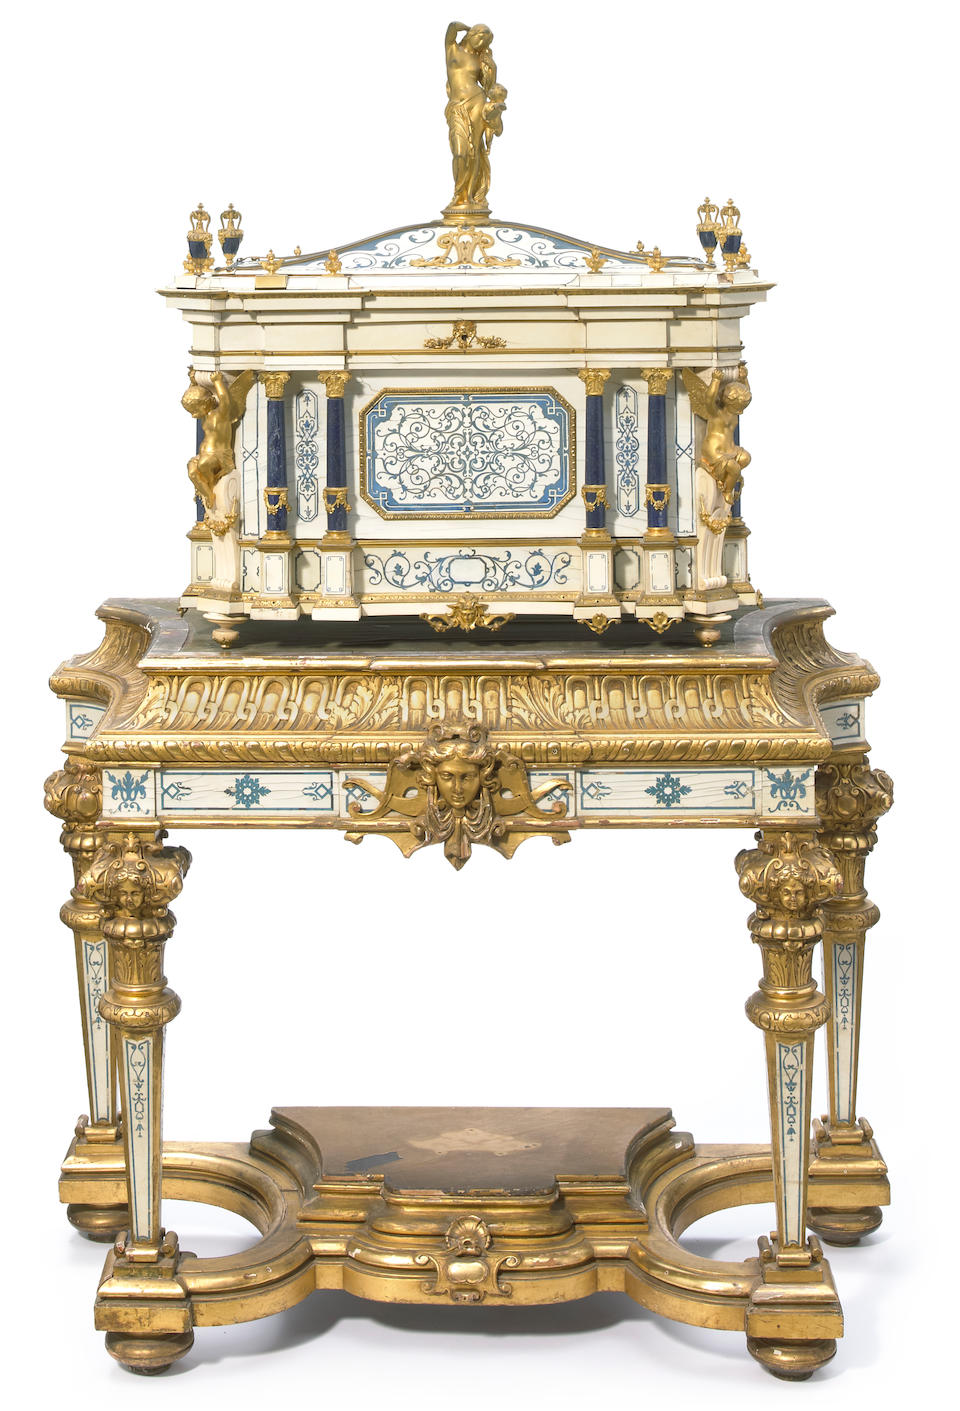 An impressive exhibition quality gilt bronze and lapis mounted natural and stained ivory serre bijoux on associated giltwood, natural and stained ivory stand  second half 19th century